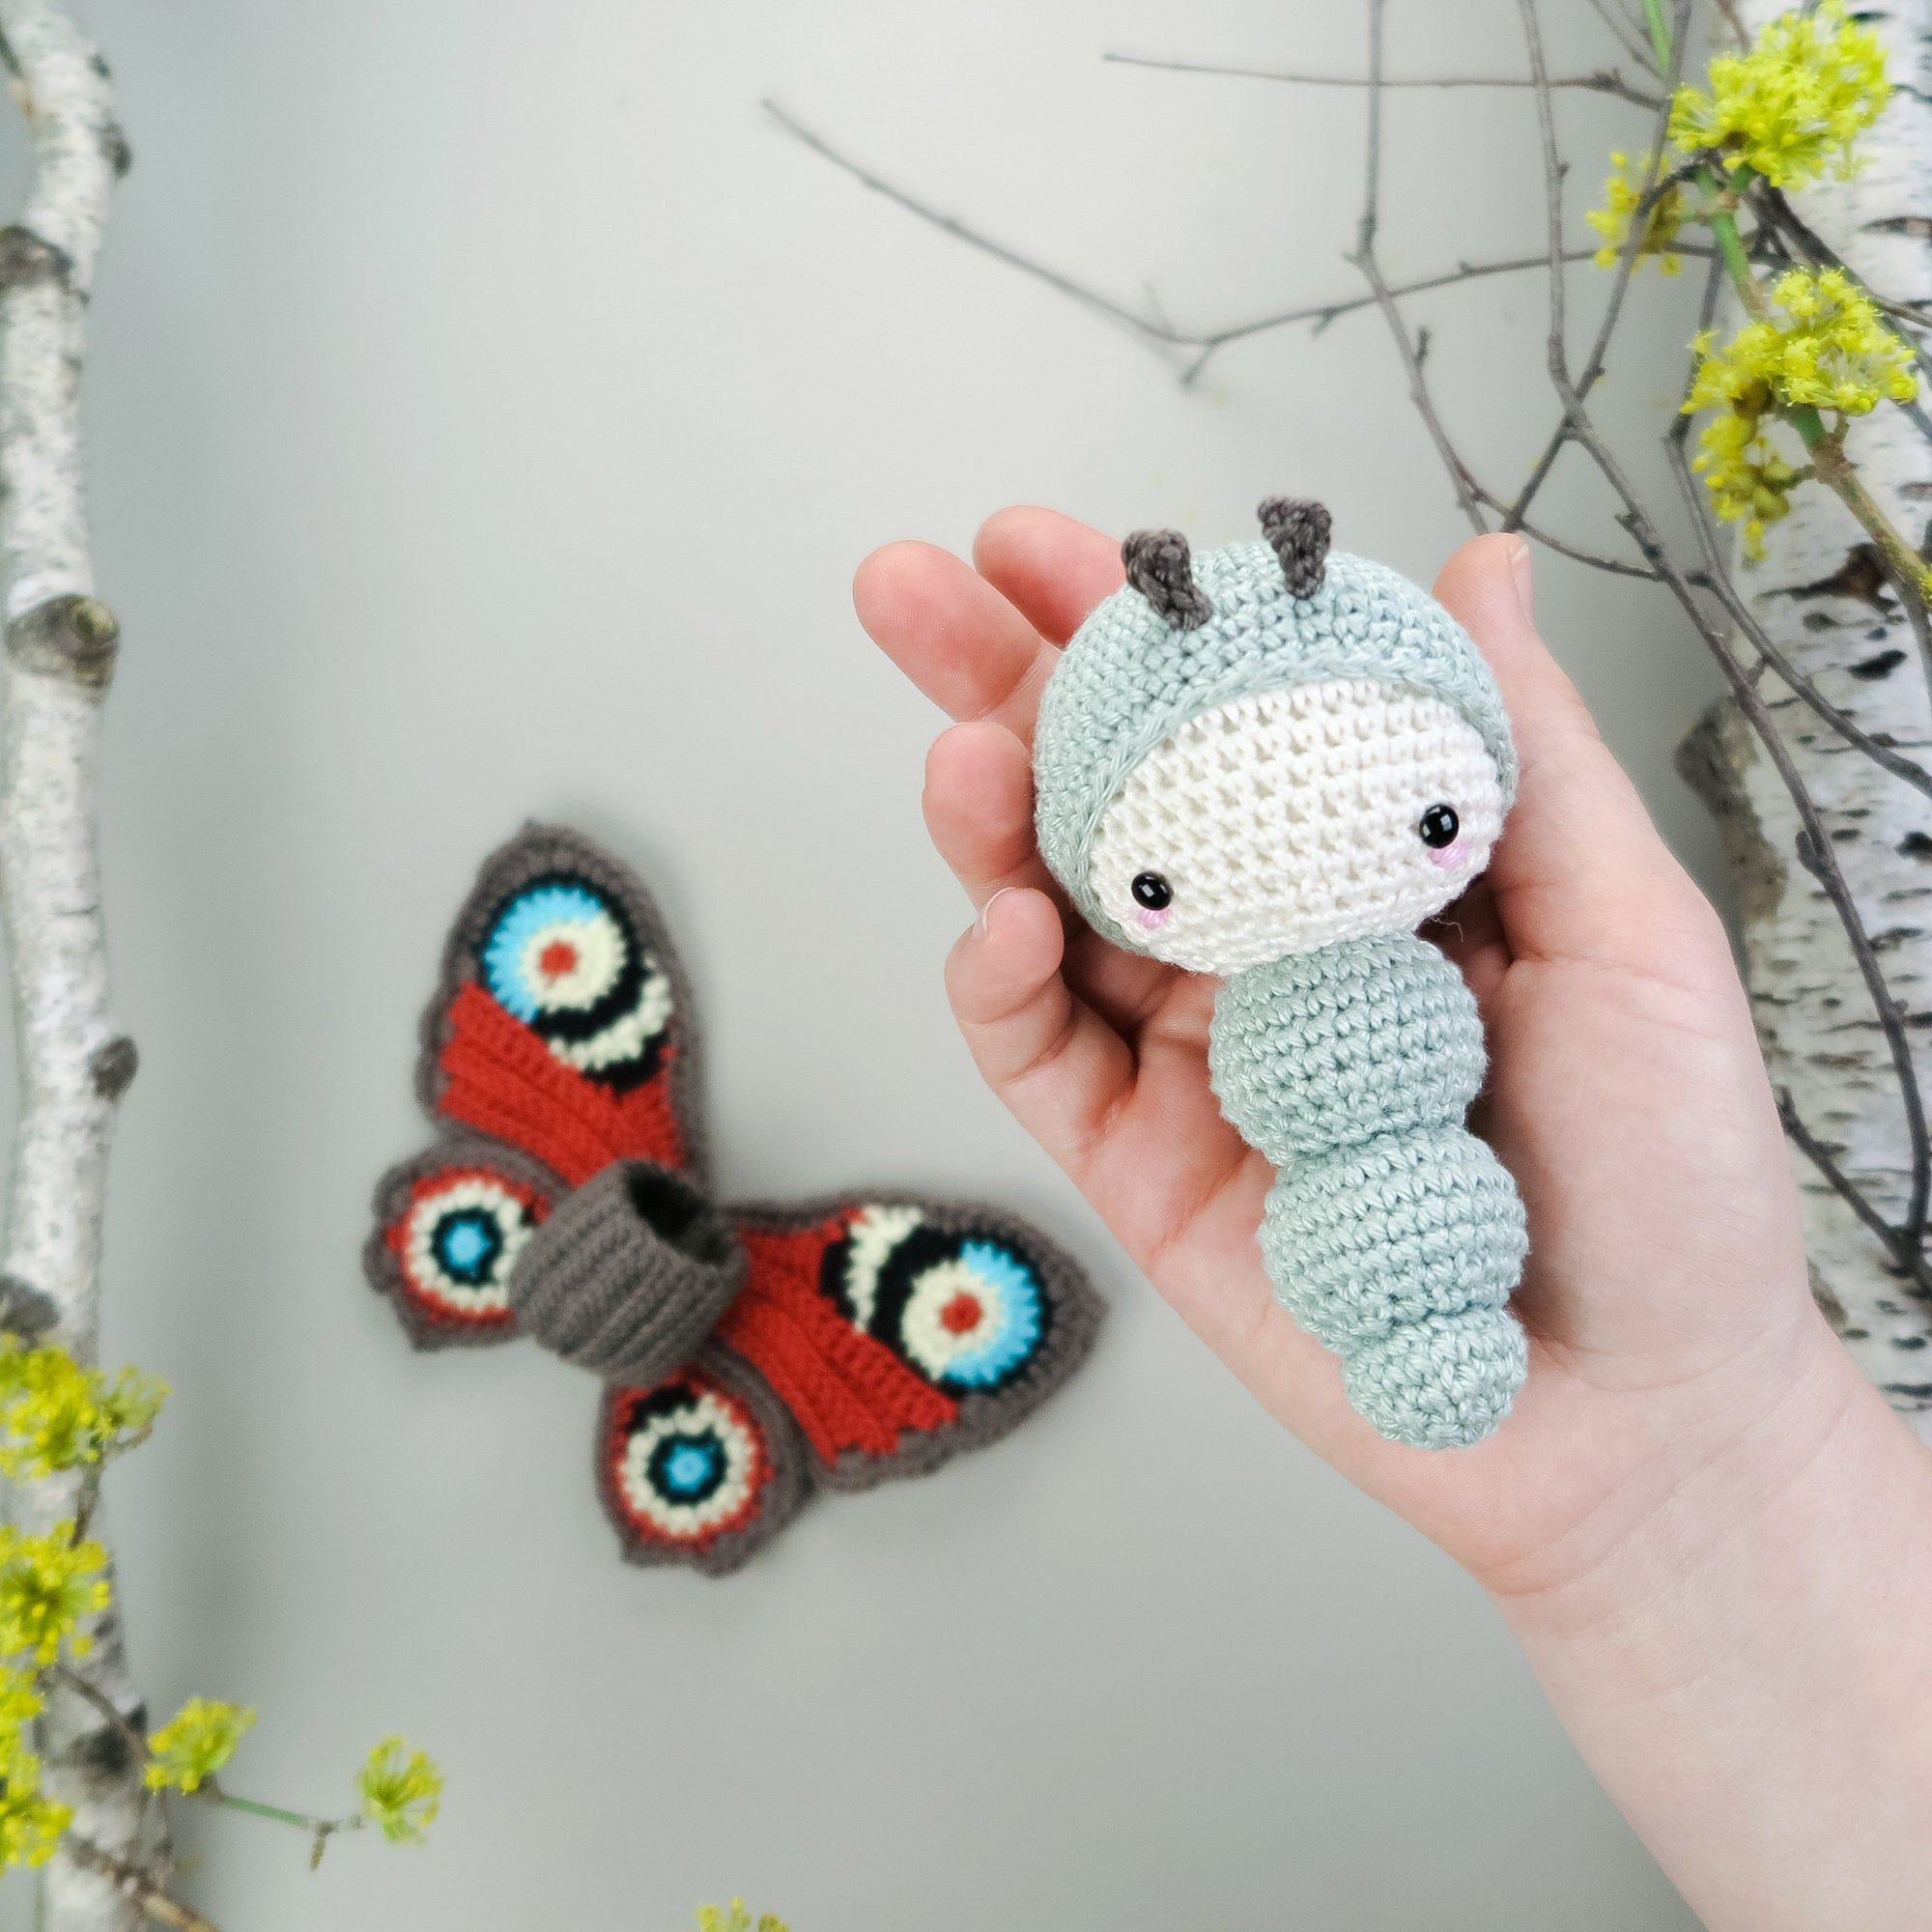 Lalylala 4 seasons EASTER Crochet pattern by lalylala | Amigurumi ... | 2000x2000